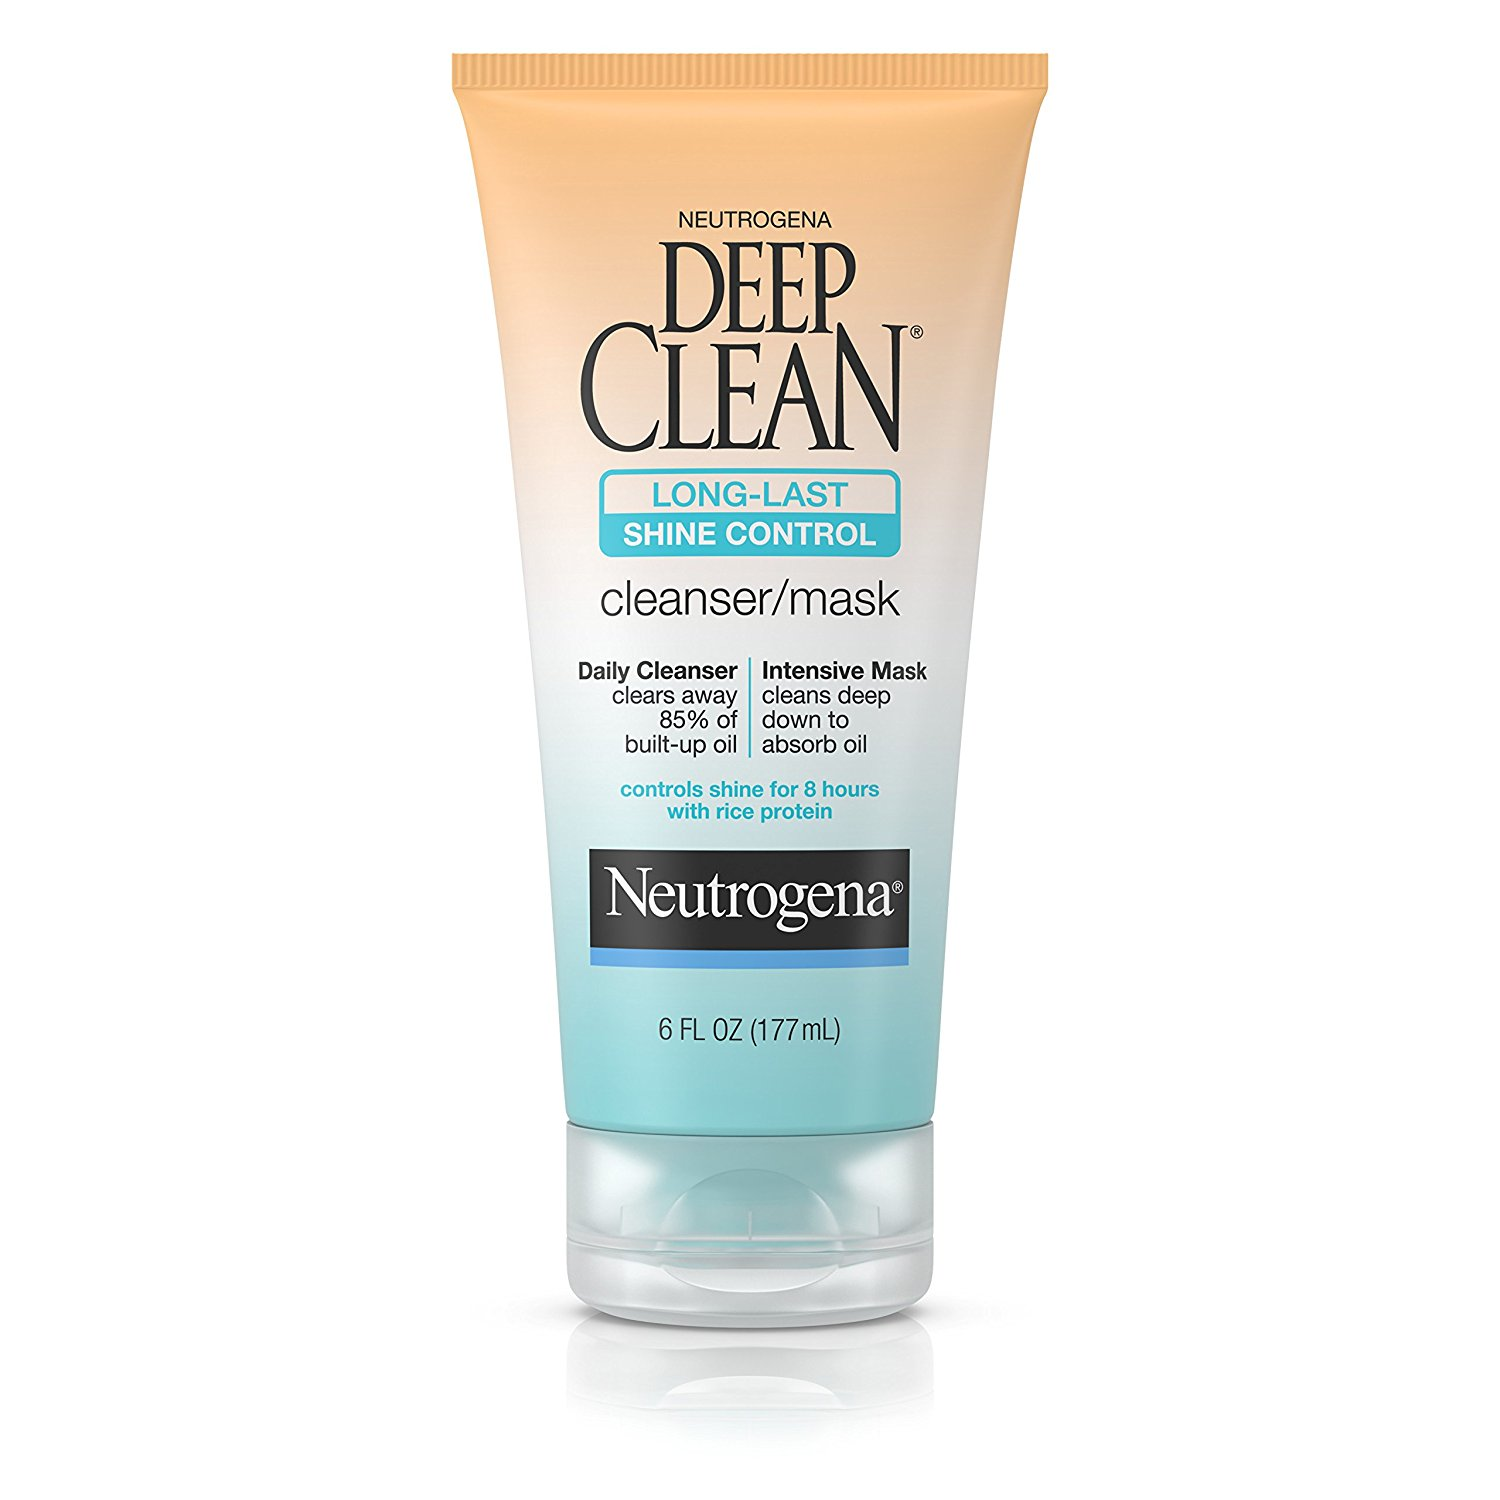 Neutrogena Deep Clean Long-Last Shine Control Facial Cleanser/Mask, 6 Fl. Oz. (Pack of 3)